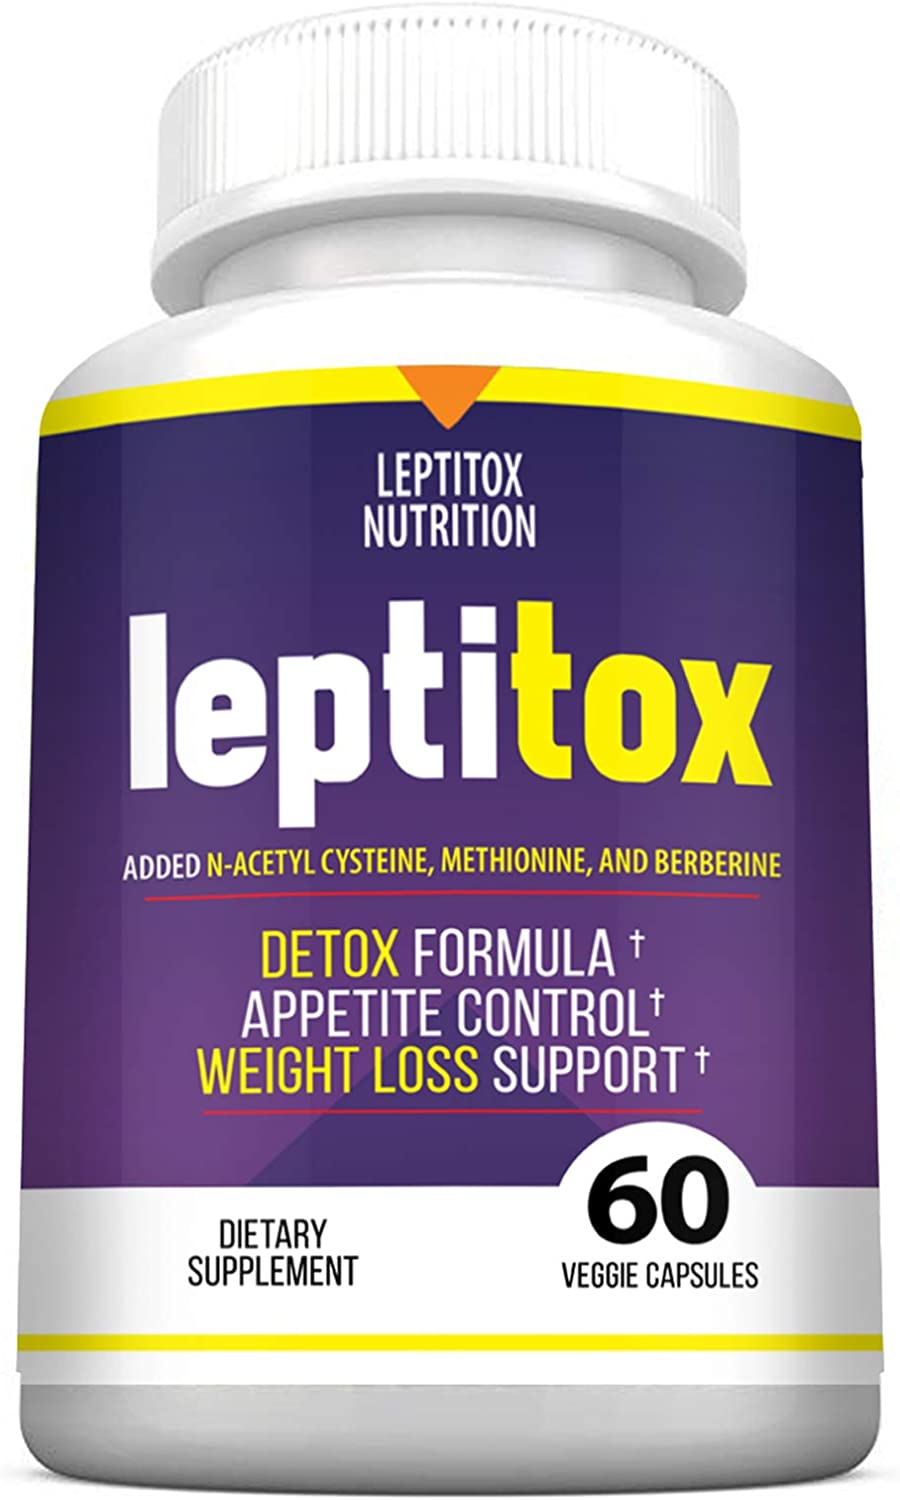 Leptitox Coupon Codes Online August